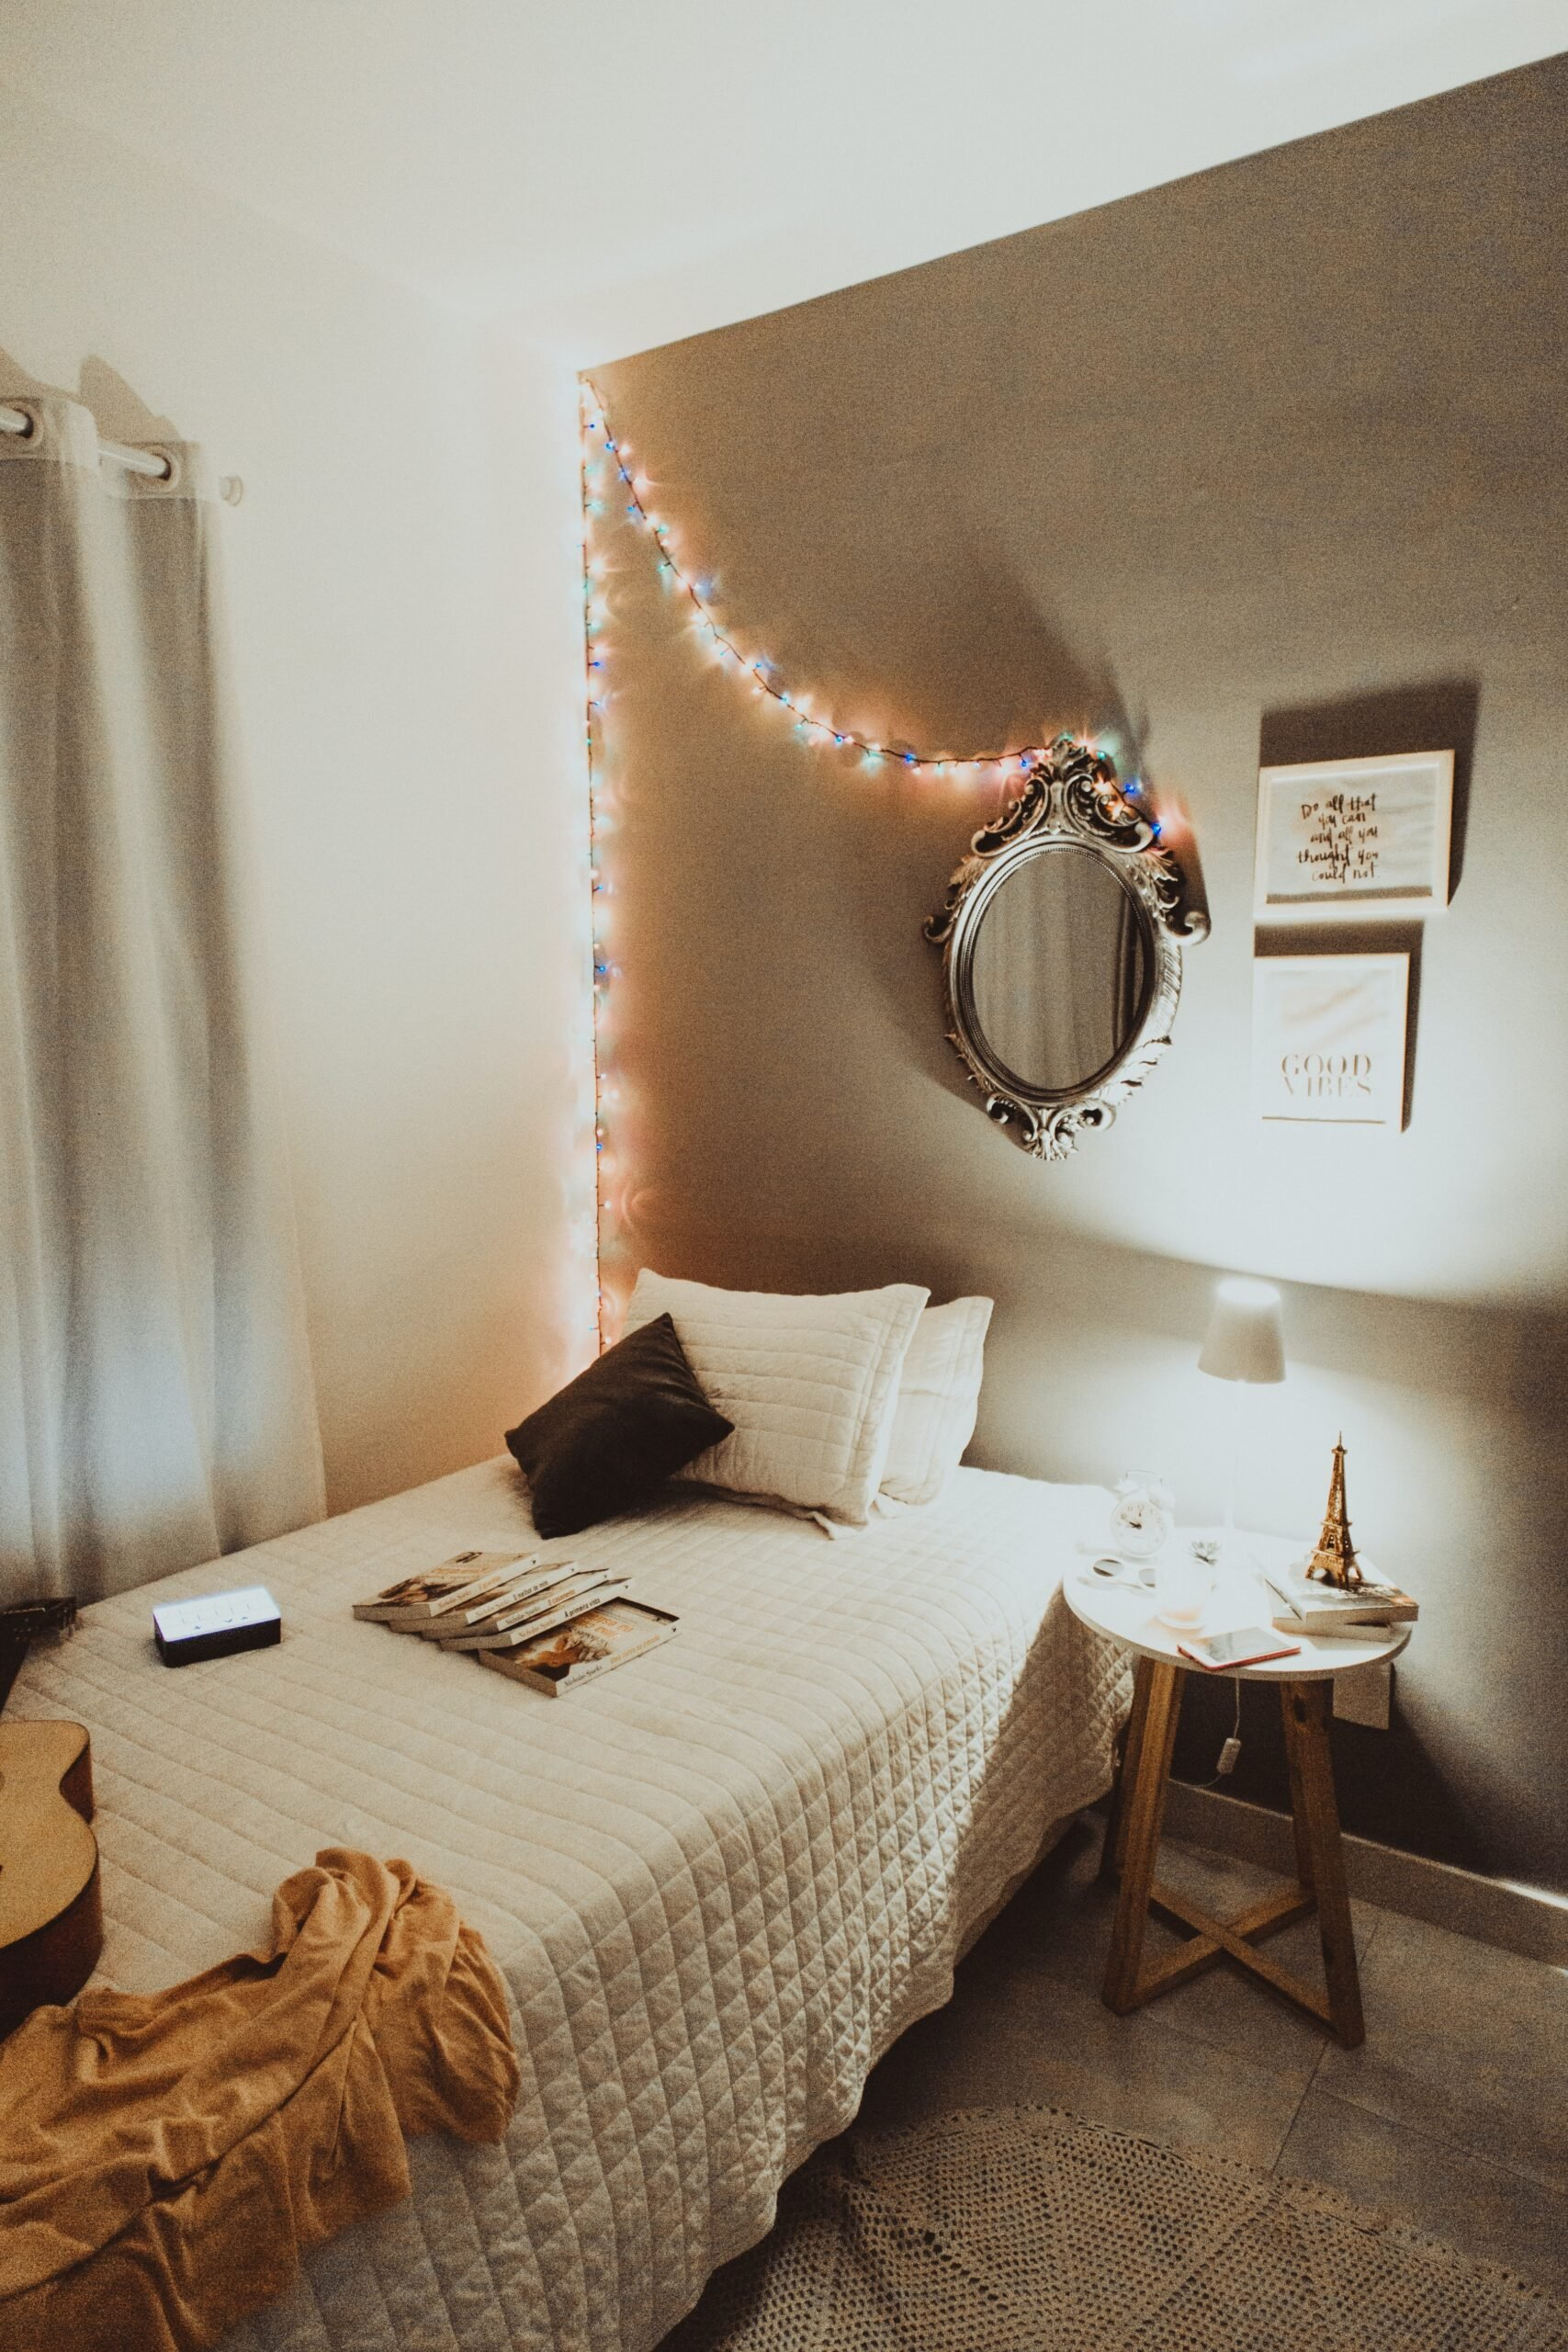 dorm room with twinkle lights